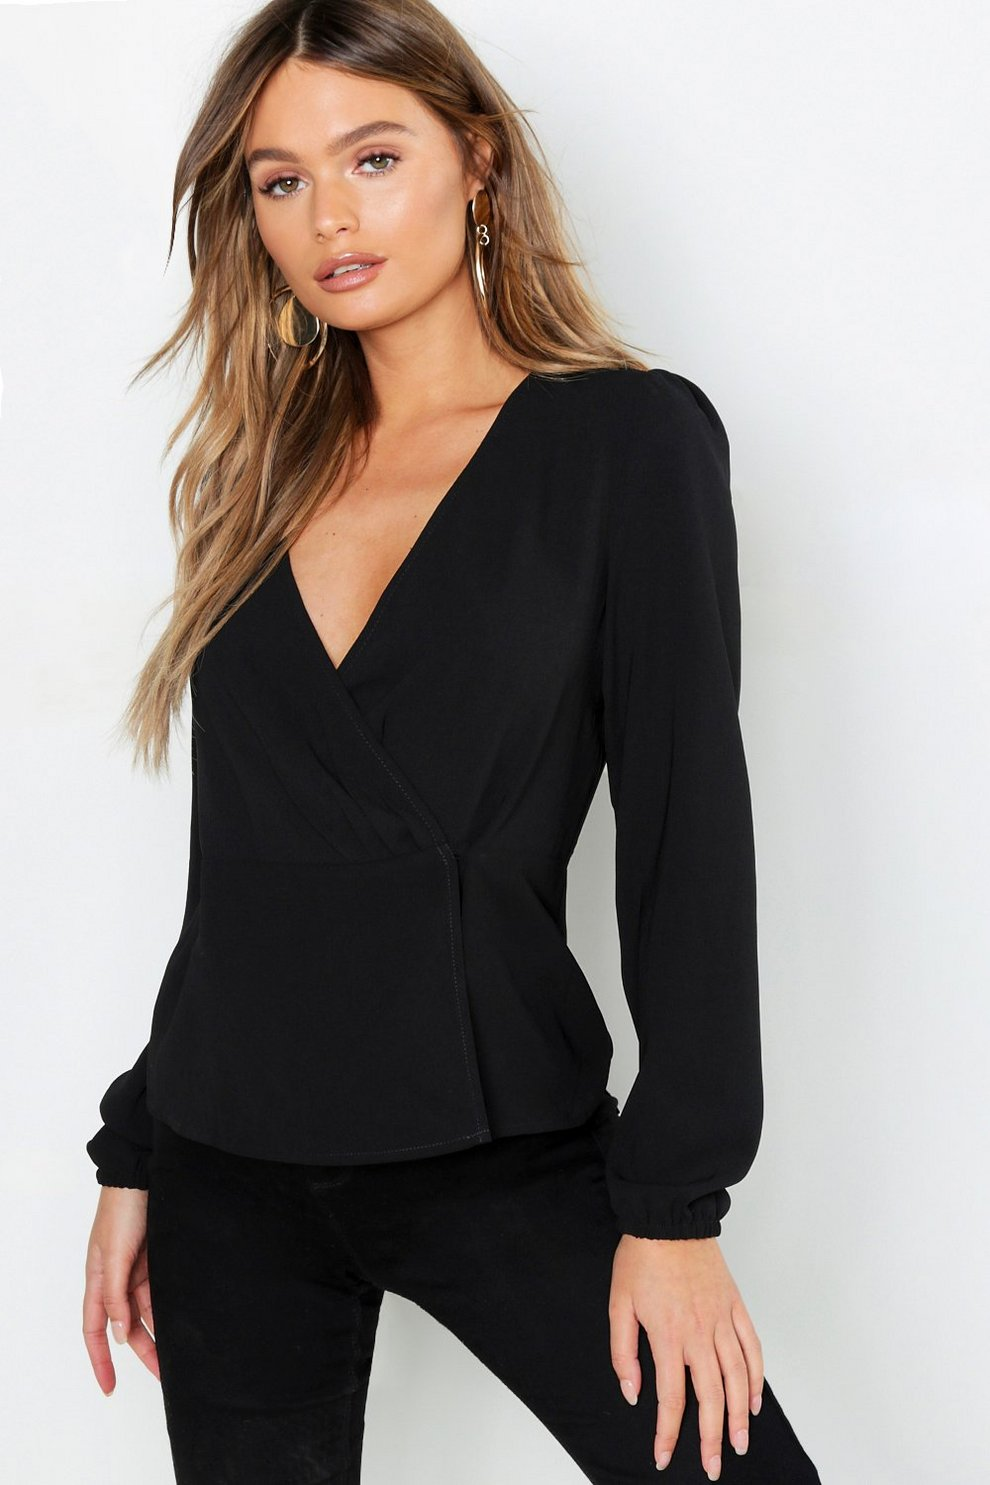 a961c72ce8122 Womens Black Wrap Peplum Hem Blouse